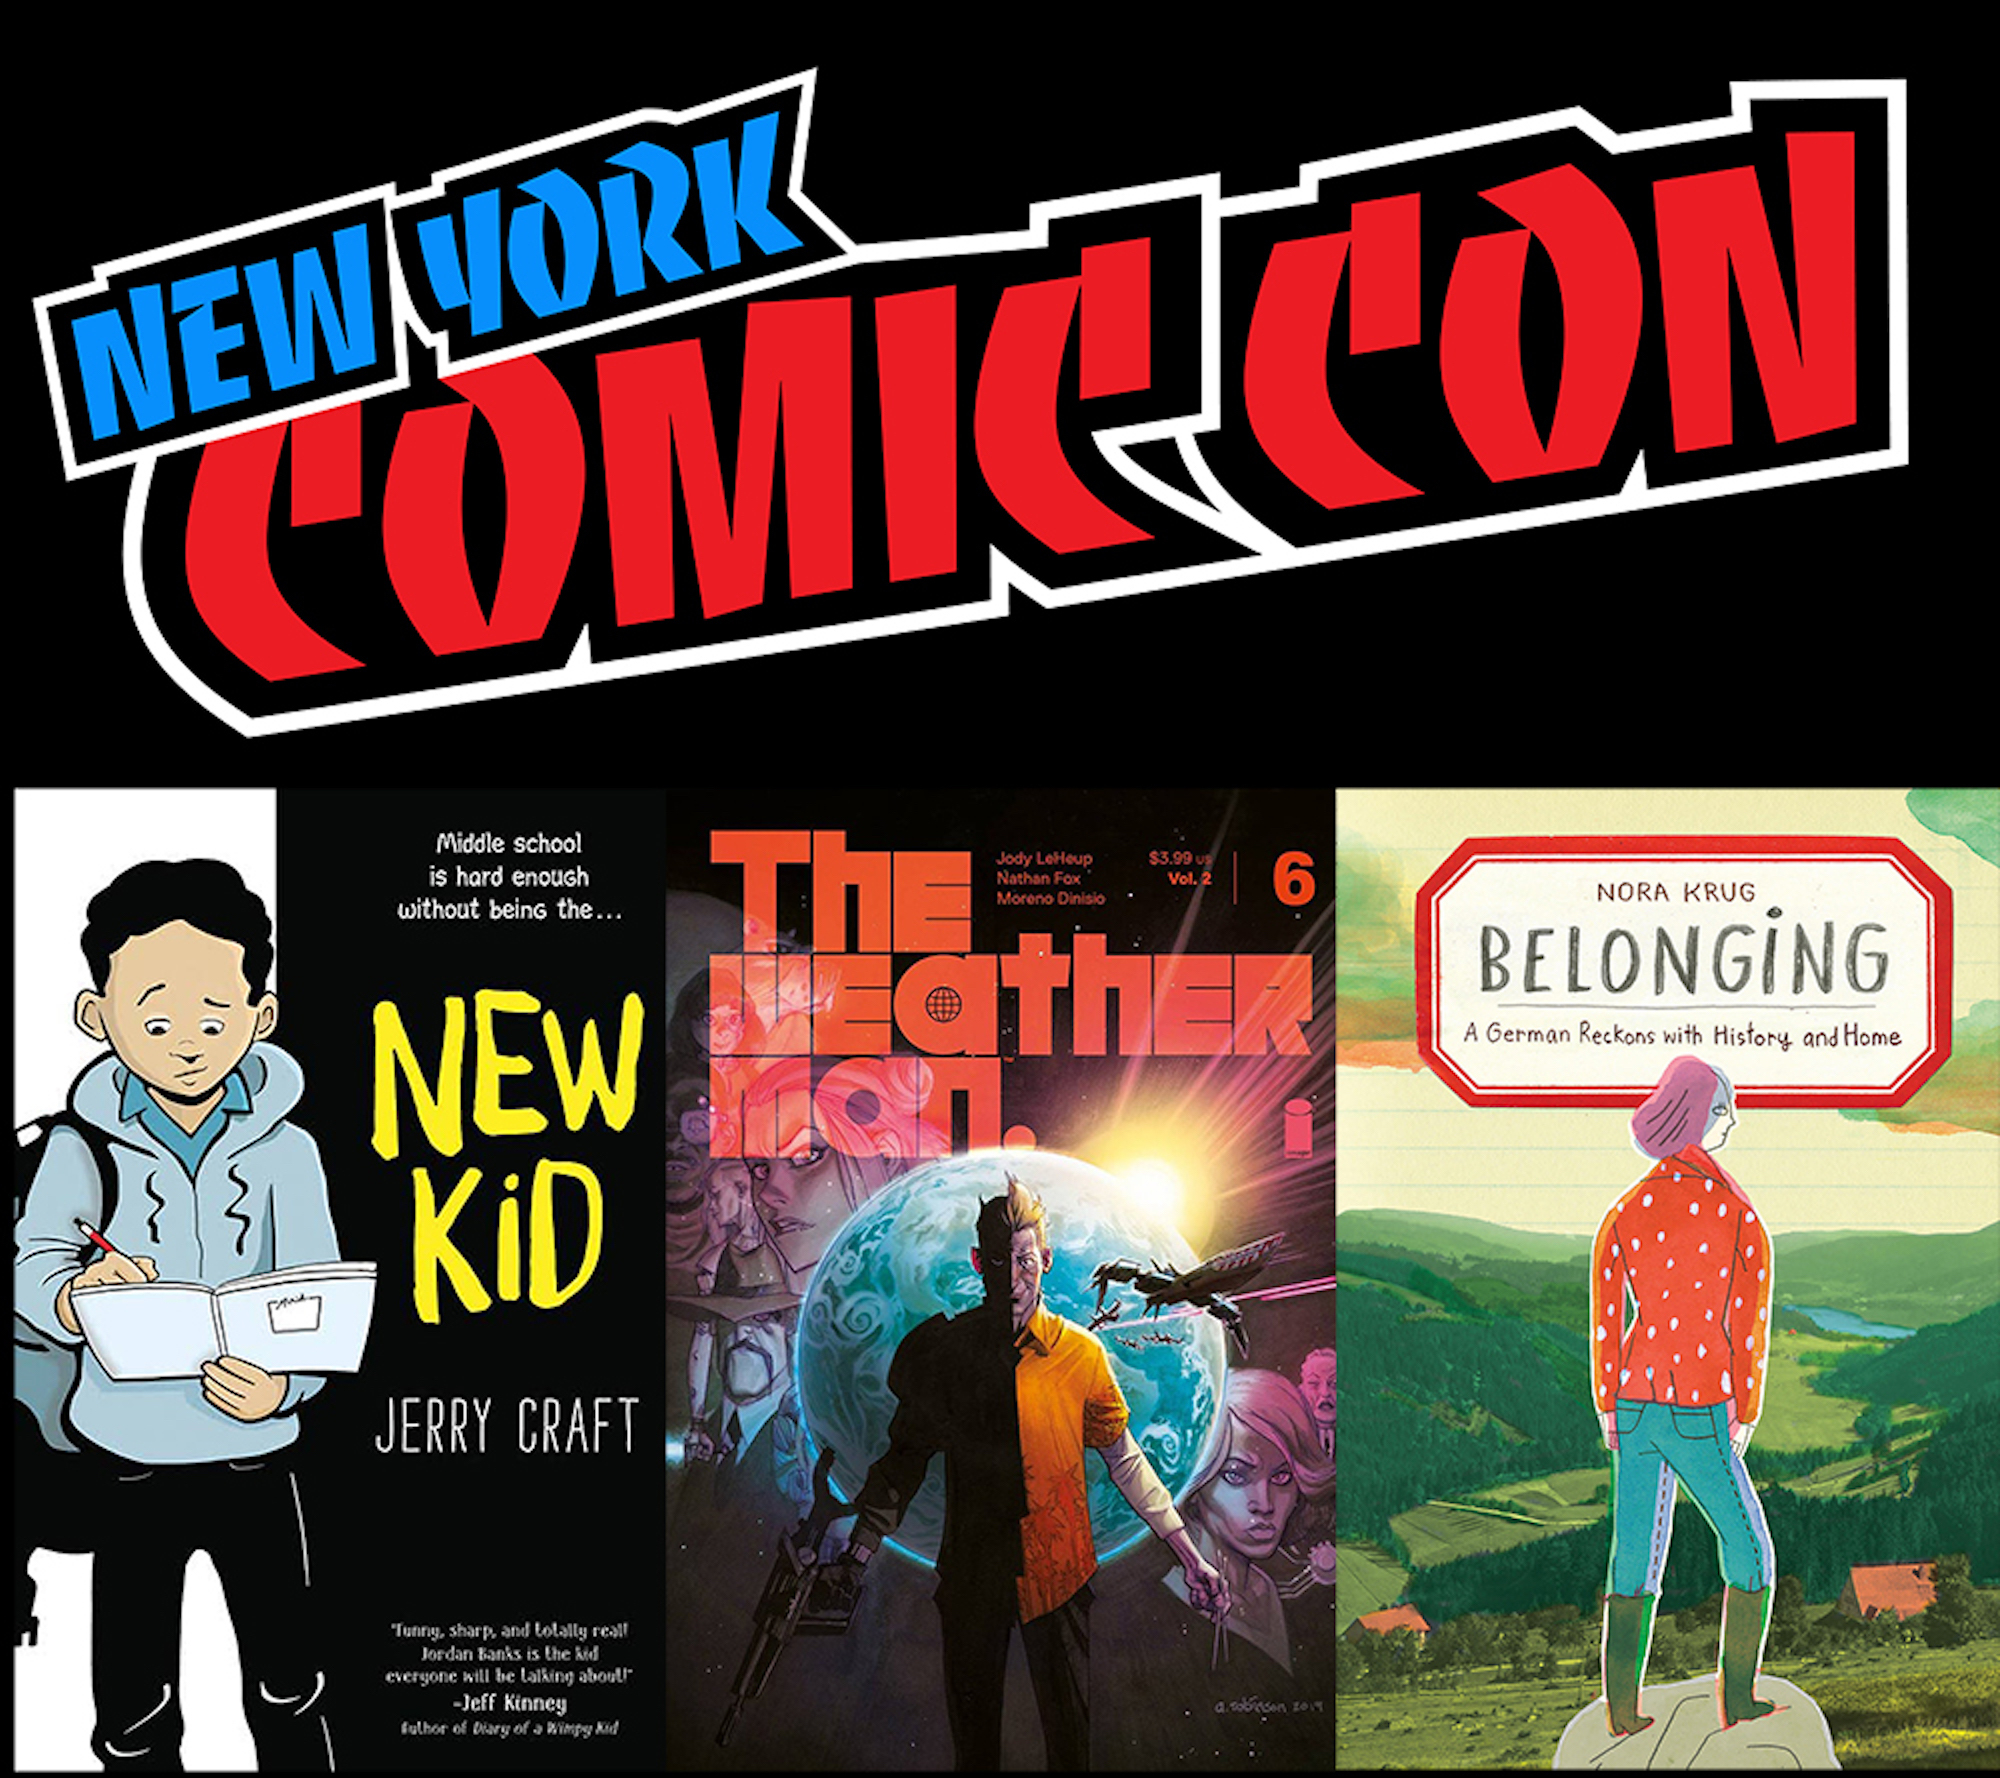 A collage featuring the logo of New York Comic Con and three illustrated book covers.